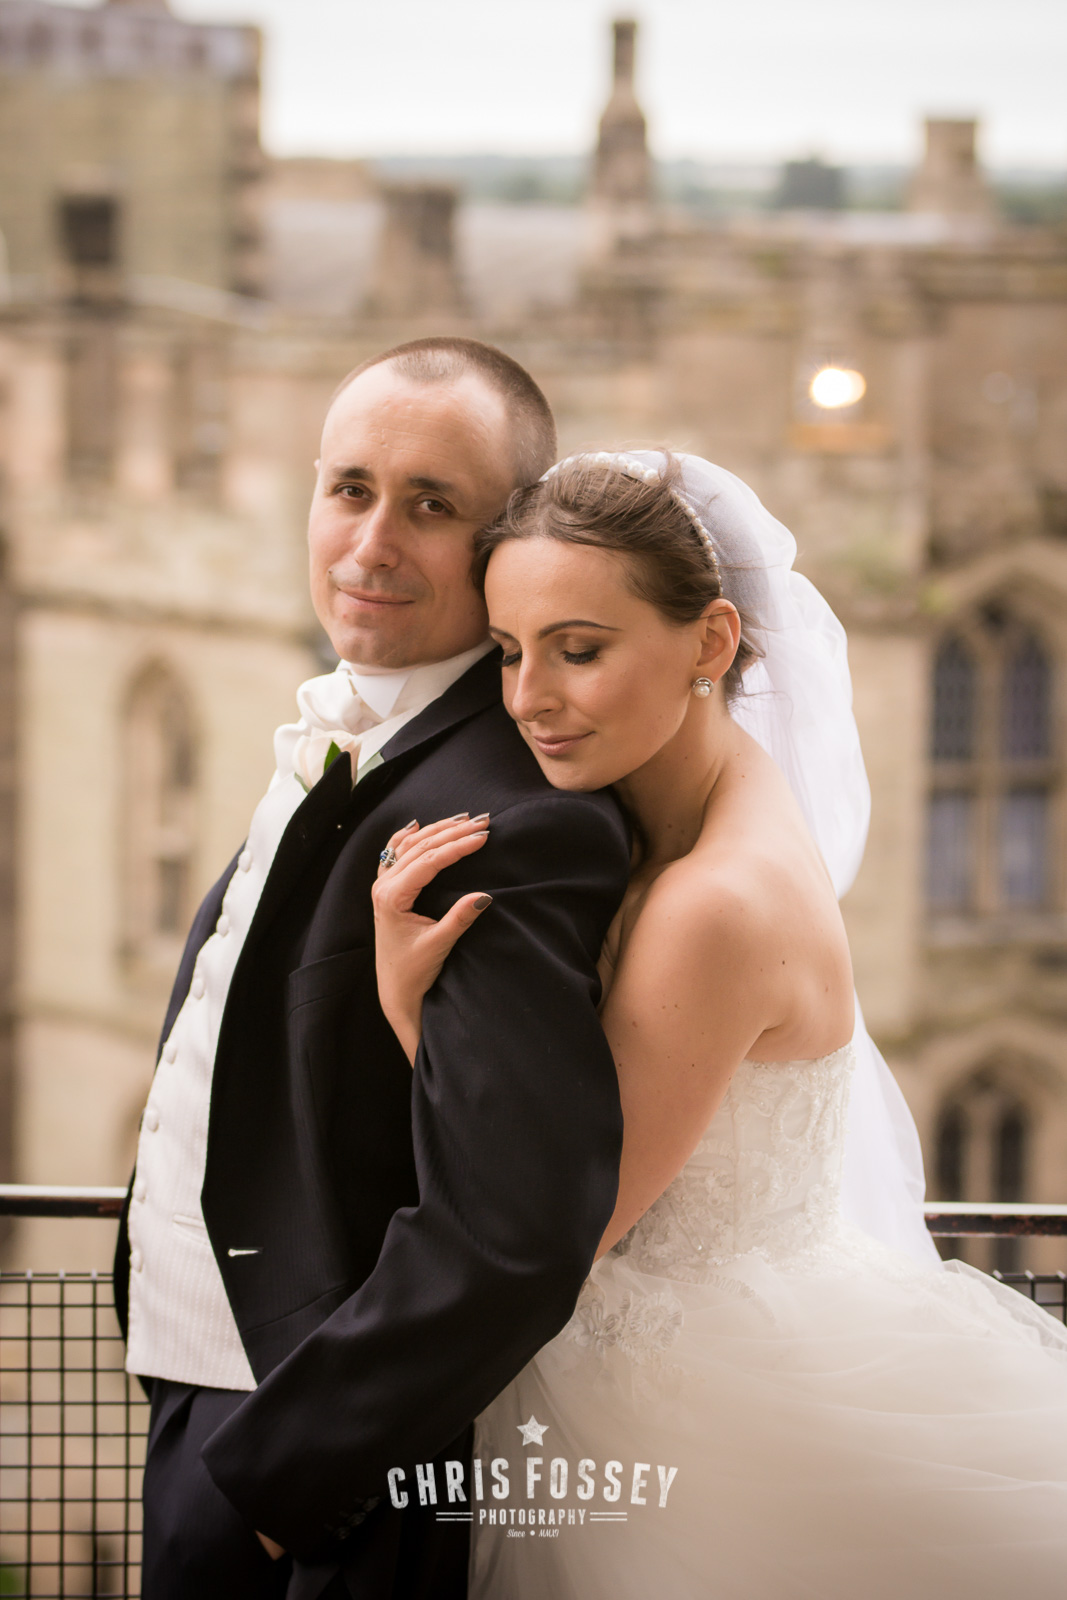 Warwick Castle Wedding Photography Warwickshire Wedding Photos by Chris Fossey Photography